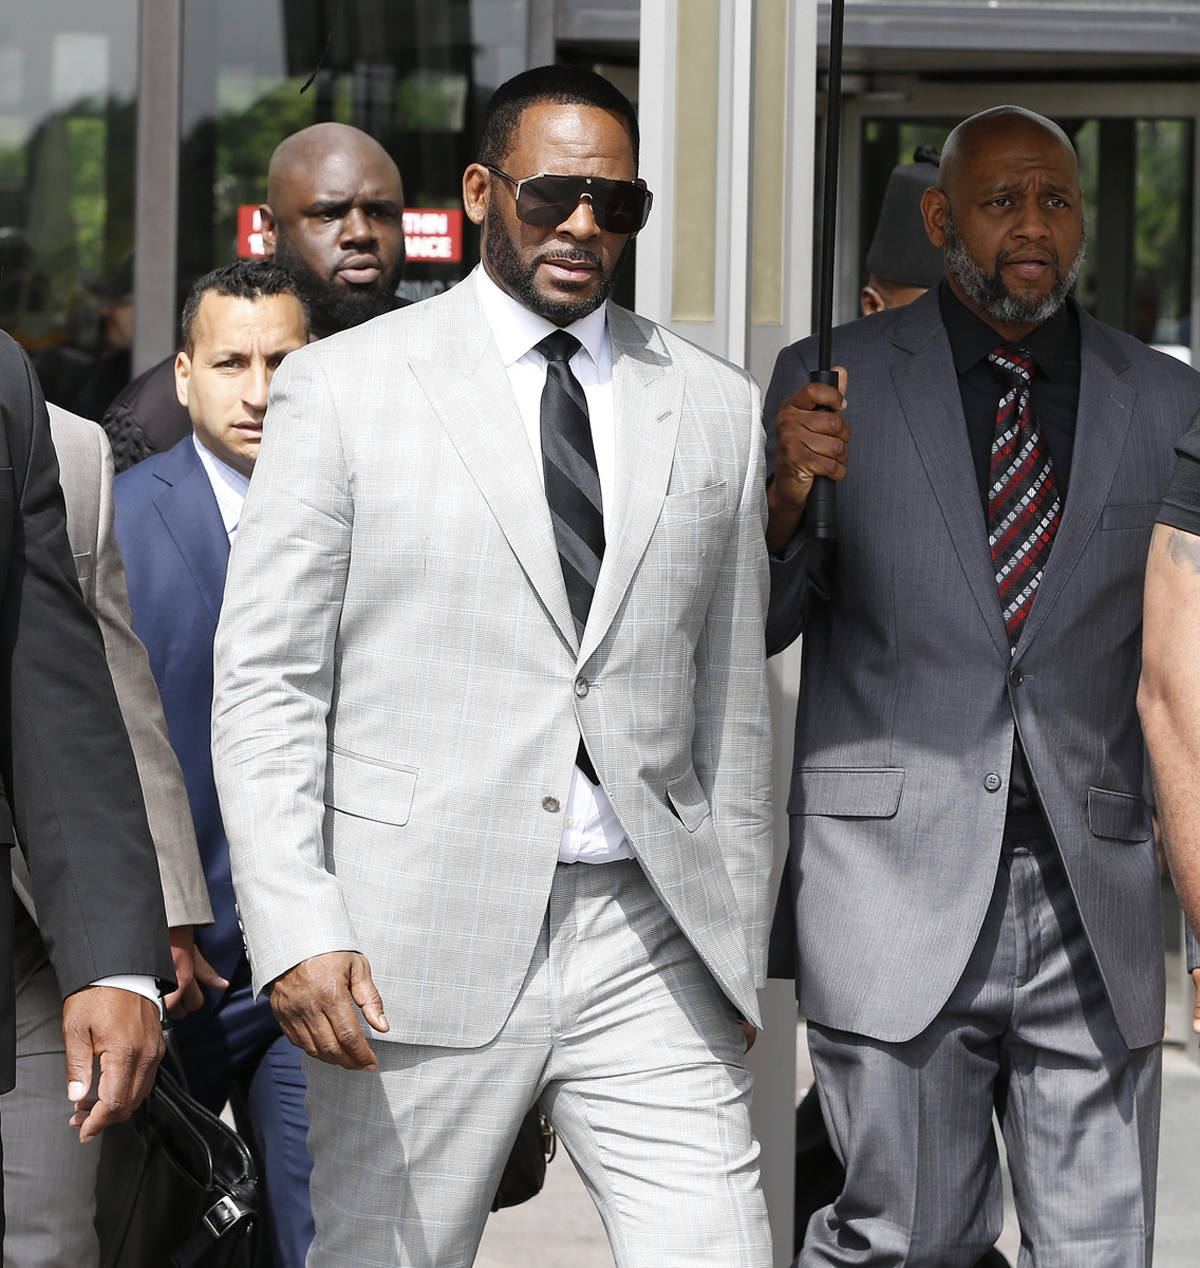 R. Kelly leaves the Leighton Criminal Court Building after appearing before a judge Thursday to face new charges of criminal sexual abuse.